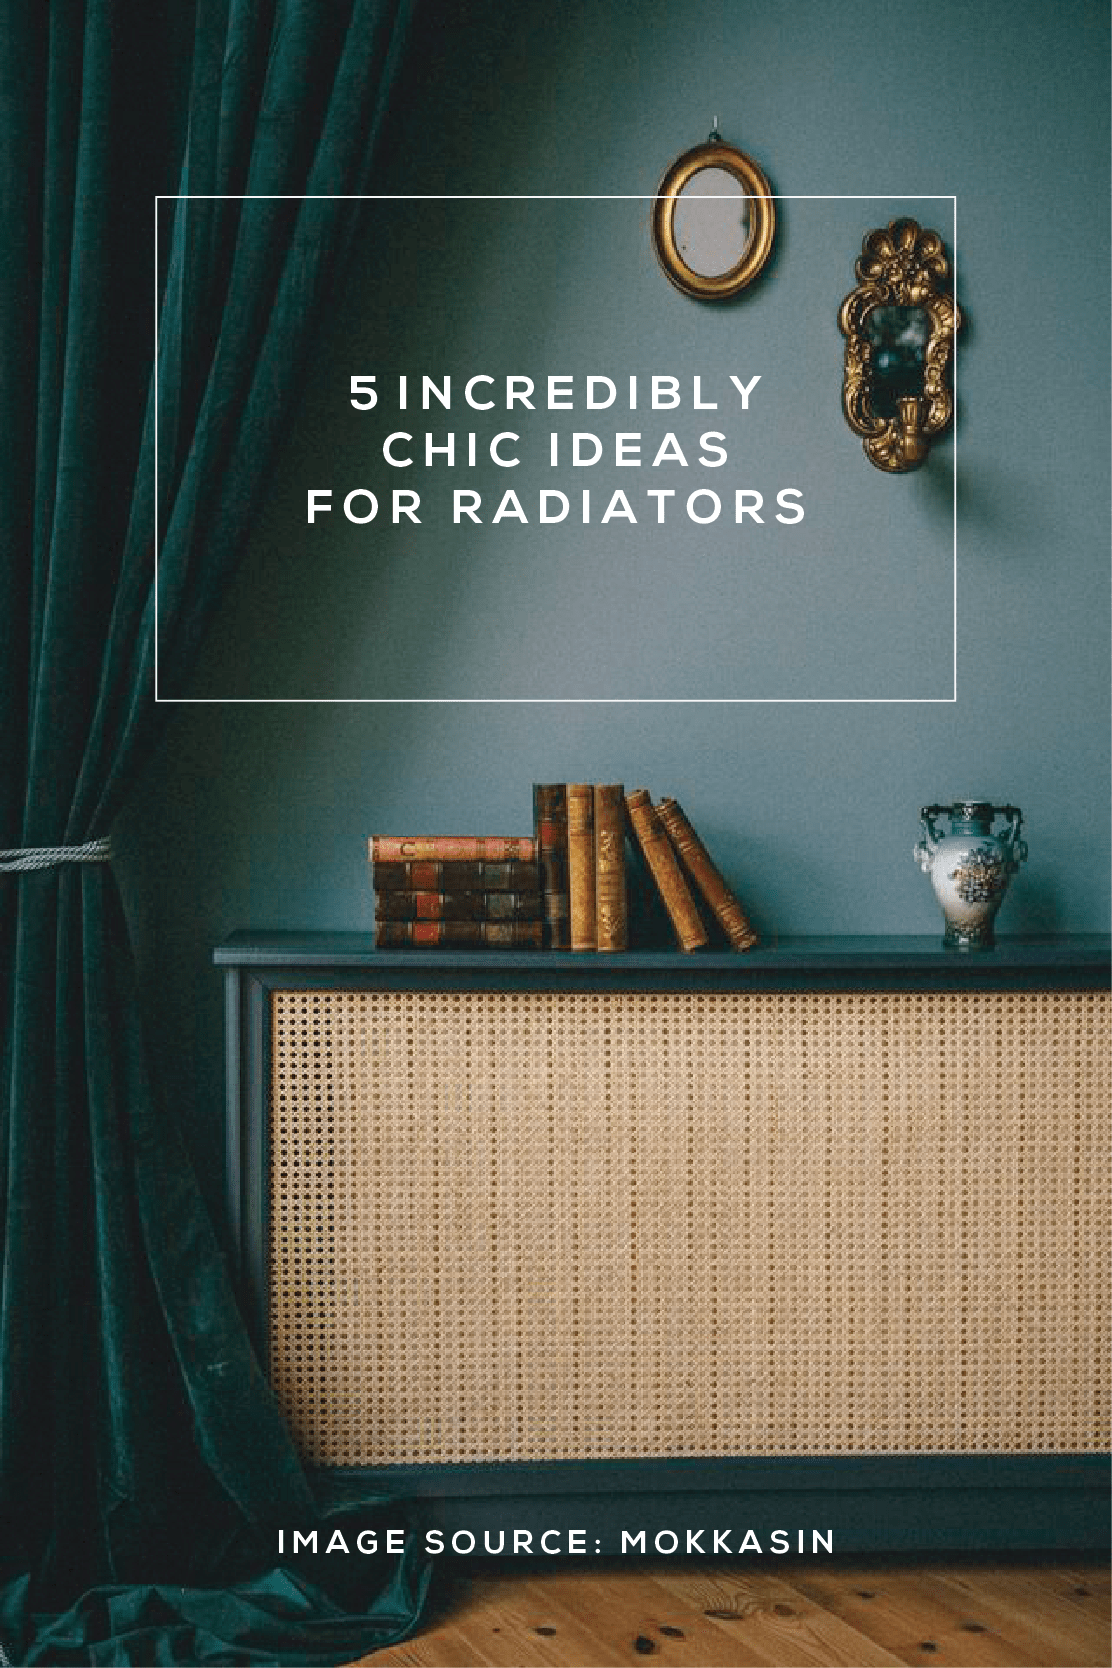 dark green walls, brass accents, caned radiator, title image